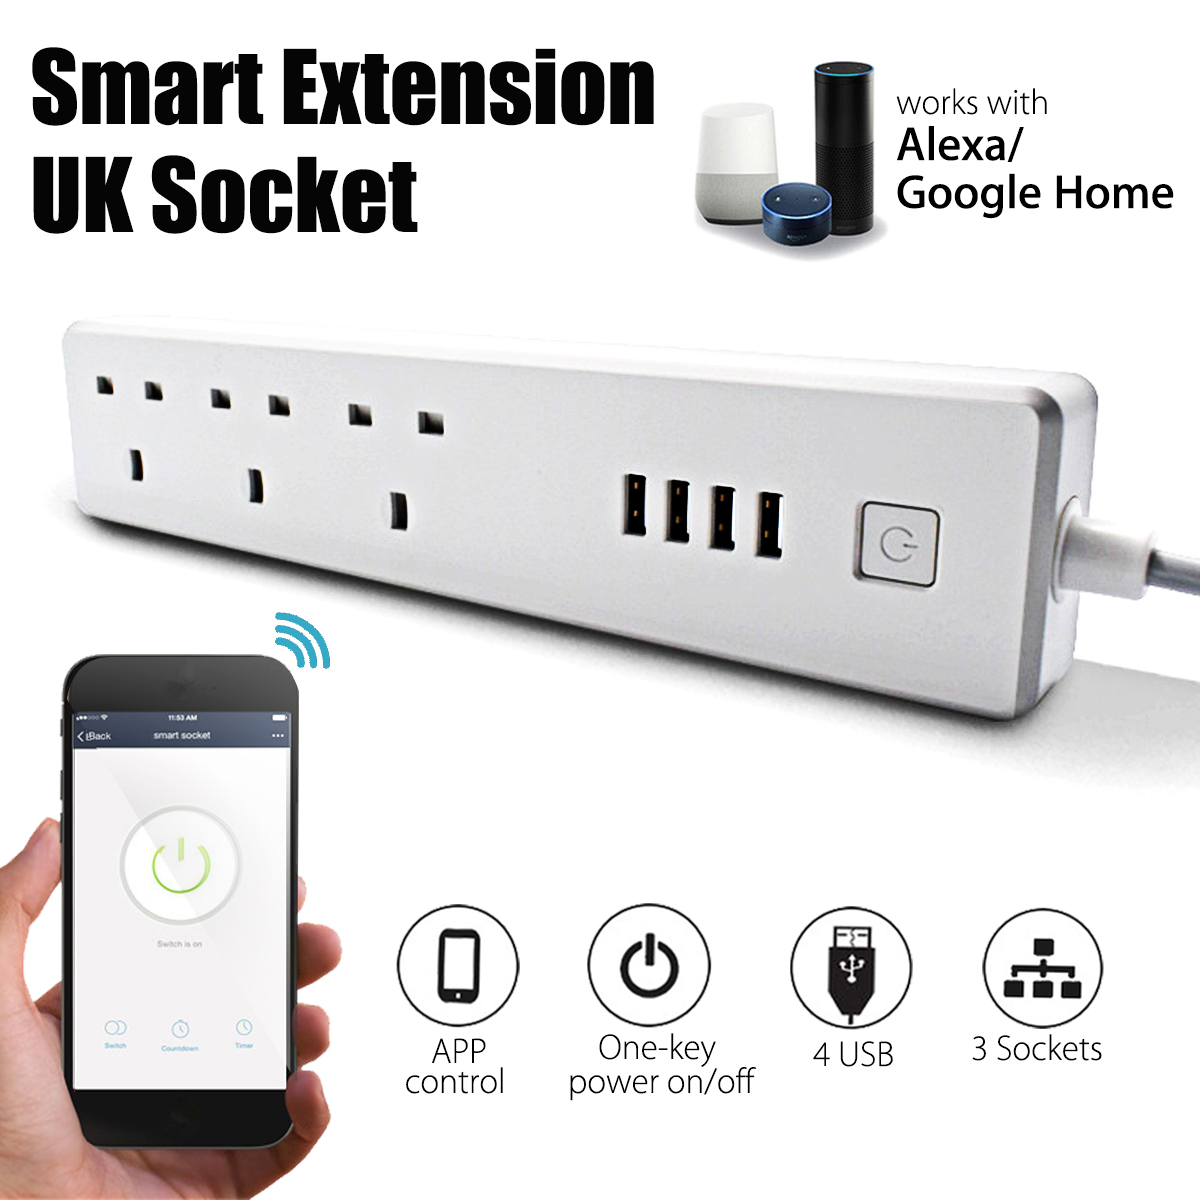 Kinco Smart Wifi Power Extension Lead UK Outlet Socket 4 USB Charging Ports For Alexa Voice Control Smart Home